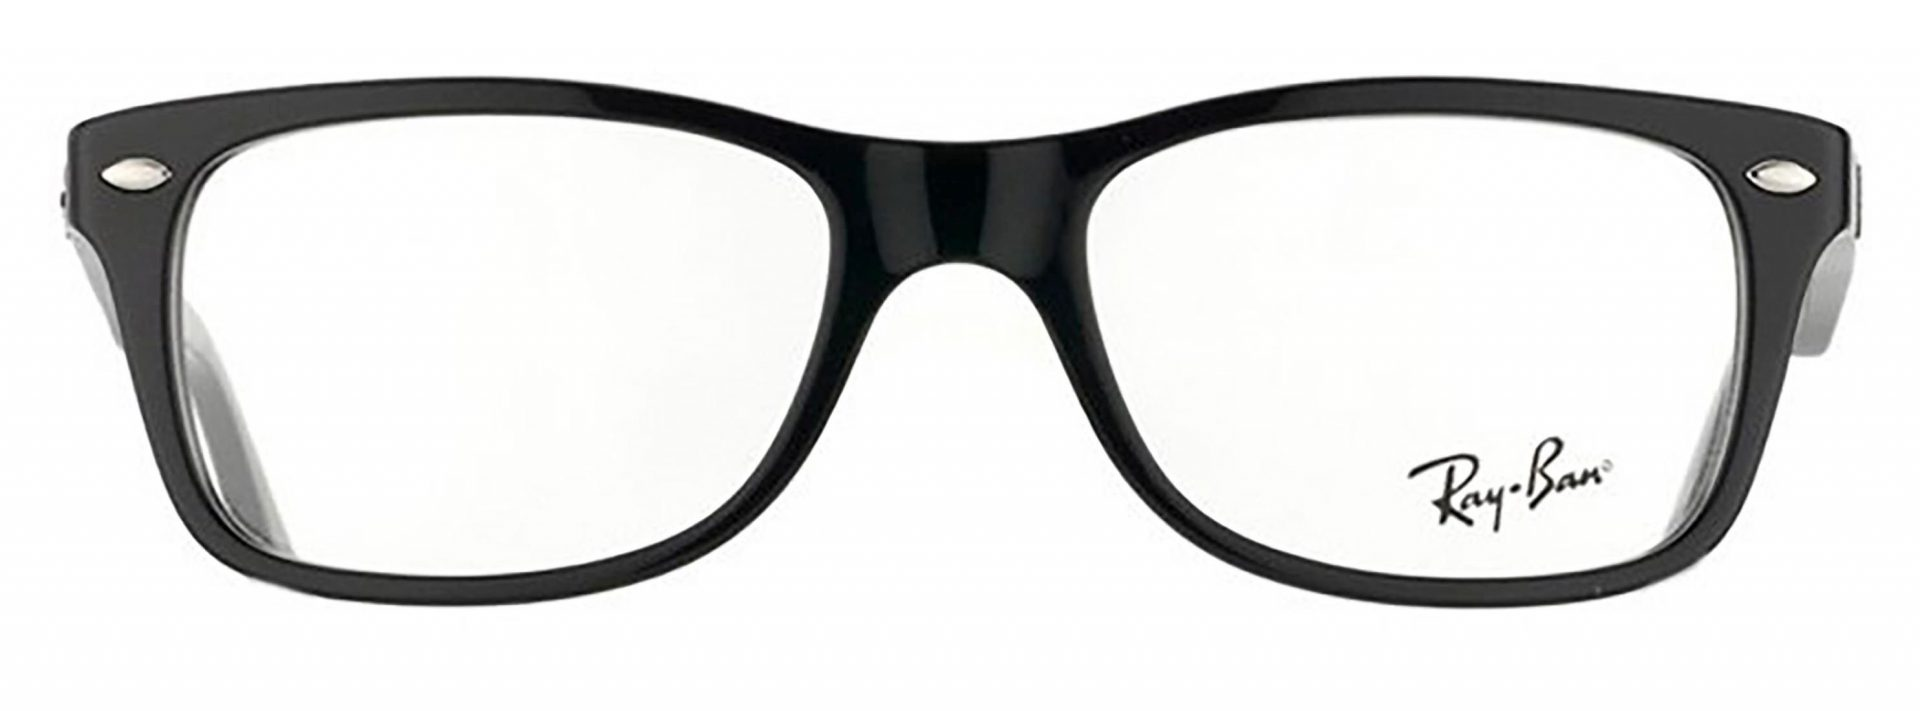 Ray-Ban spectacles 5228 2000 1 2970x1100